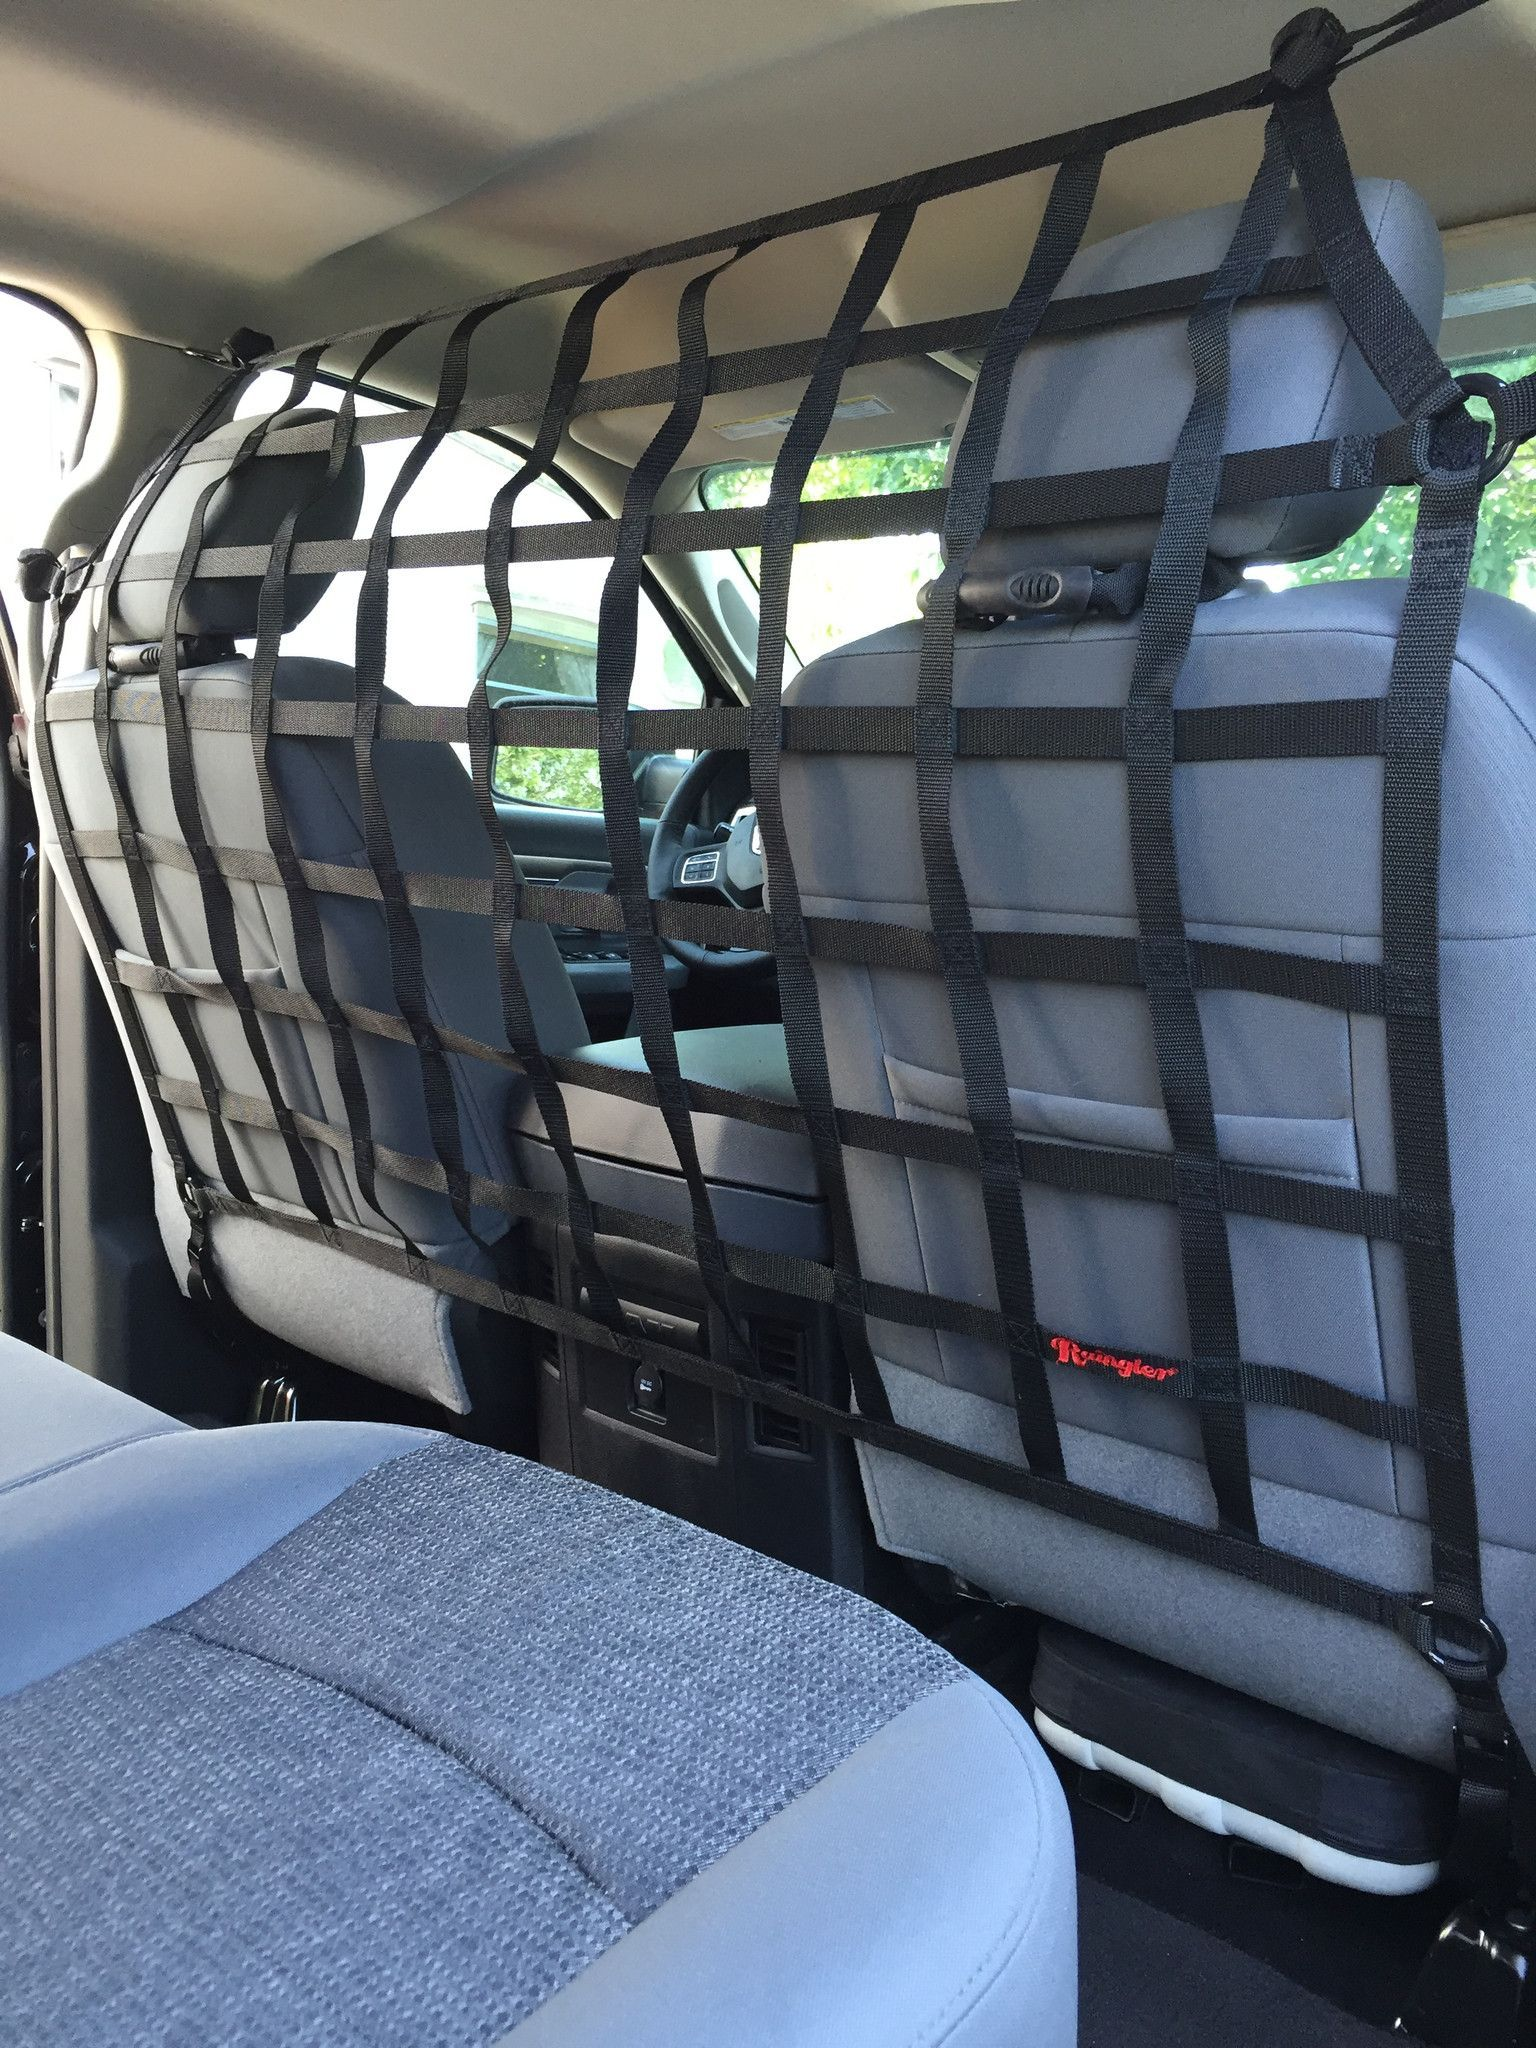 2002 2009 Ram 1500 2500 3500 4500 5500 Crew Cab Quad Cab Behind Front Seats Barrier Divider Net Dodge Ram 1500 Accessories Ford F150 Accessories Ford Trucks